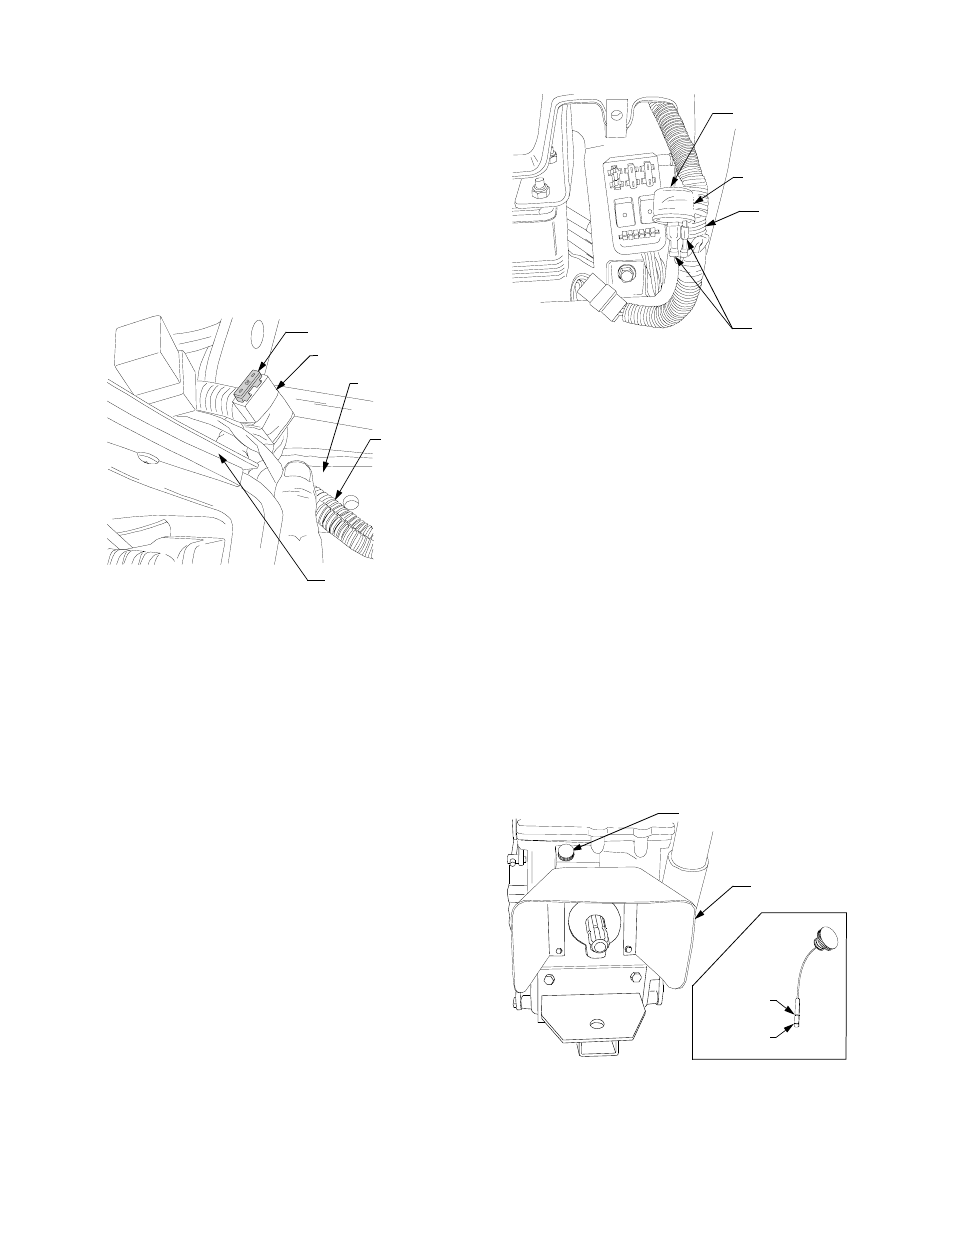 Cub Cadet 7264 Wiring Diagram Blogs For Tractor User Manual Page 34 52 Craigslist Compact Tractors